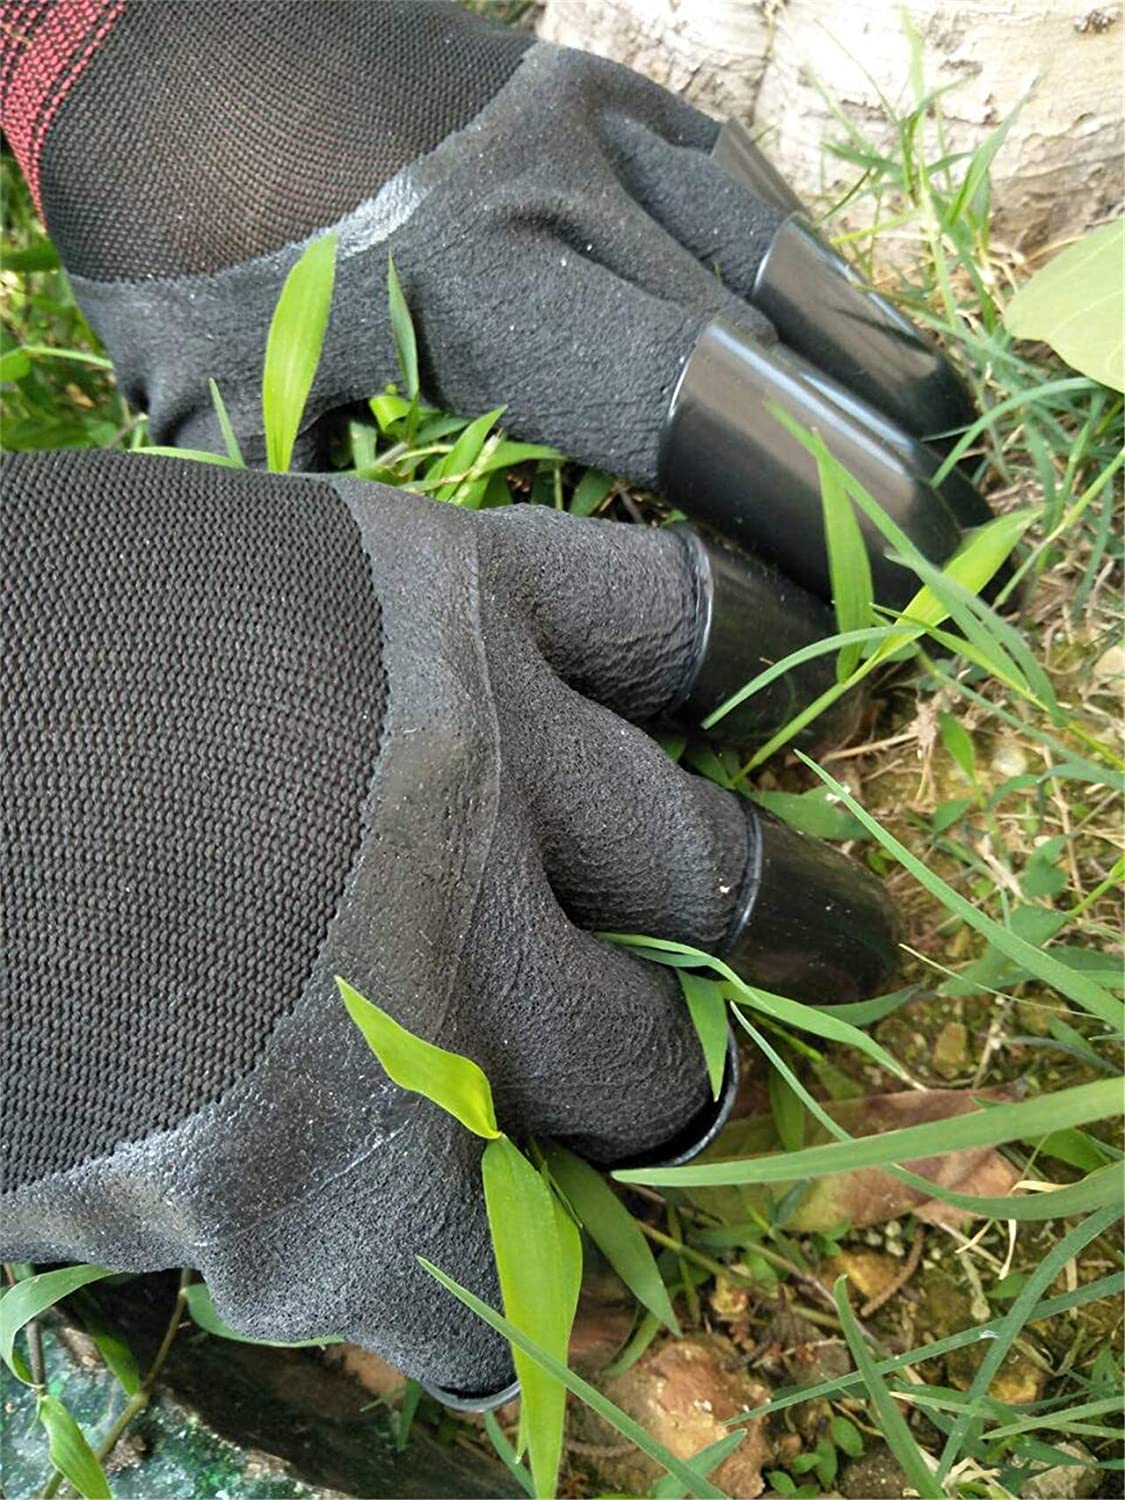 Home Gardening Genie Gloves Quick /& Easy to Dig and Plant Nursery Plants,Best Gift for Gardener FuXing Garden Gloves with Claws